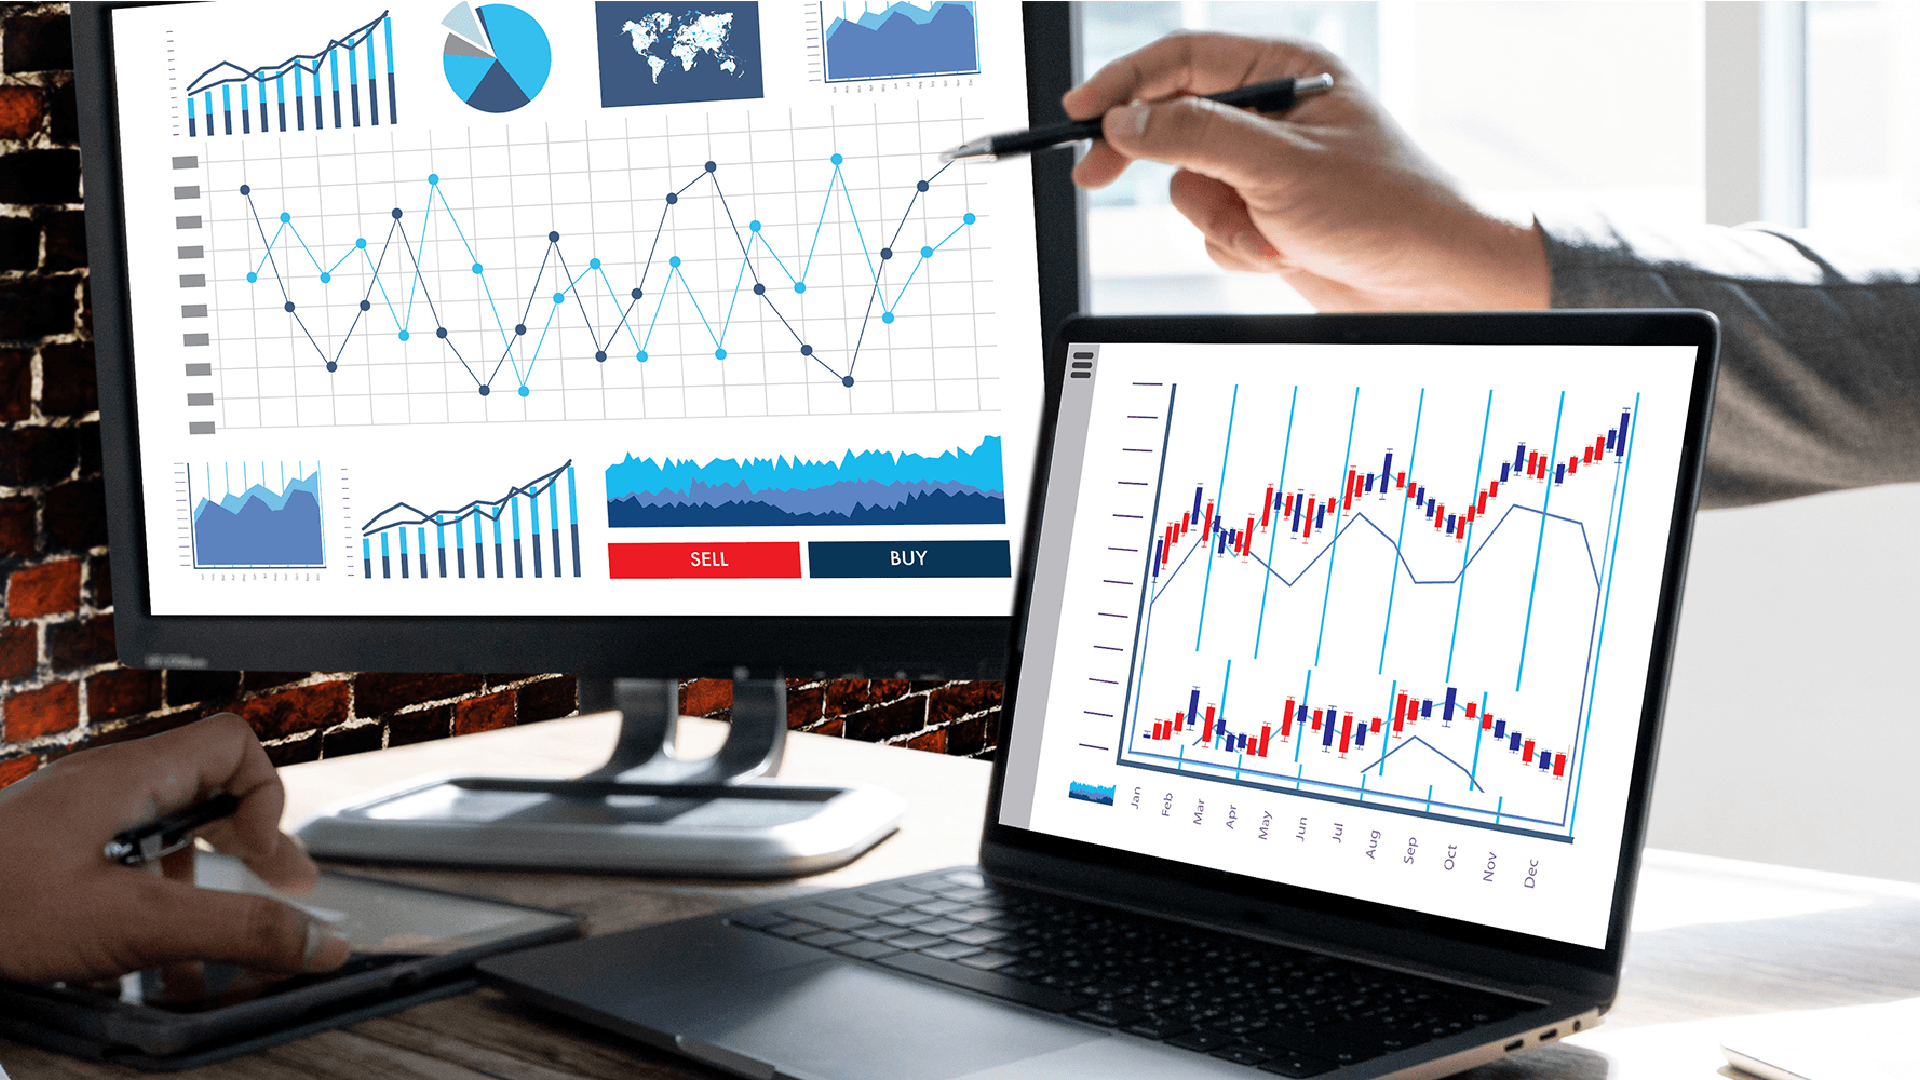 Navigating Business Issues Amid COVID-19: How Data Analytics Can Uncover Key Trends